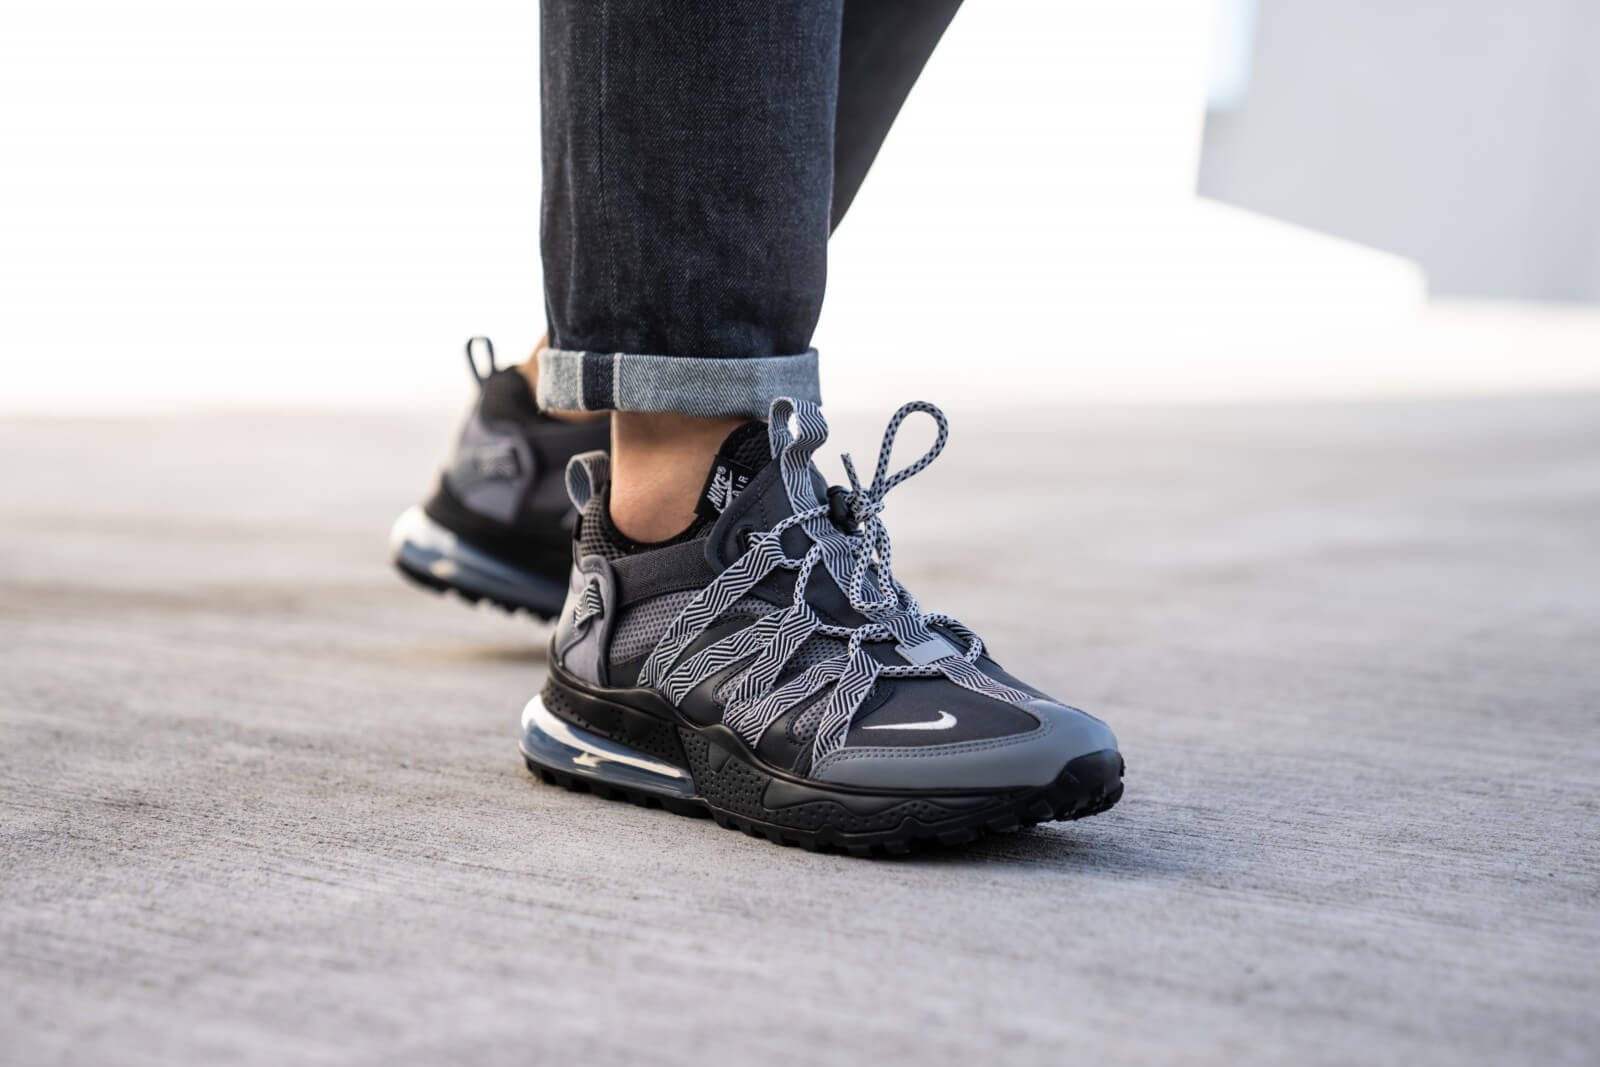 Nike Air Max 270 Bowfin Anthracite, Silver & Black | END.